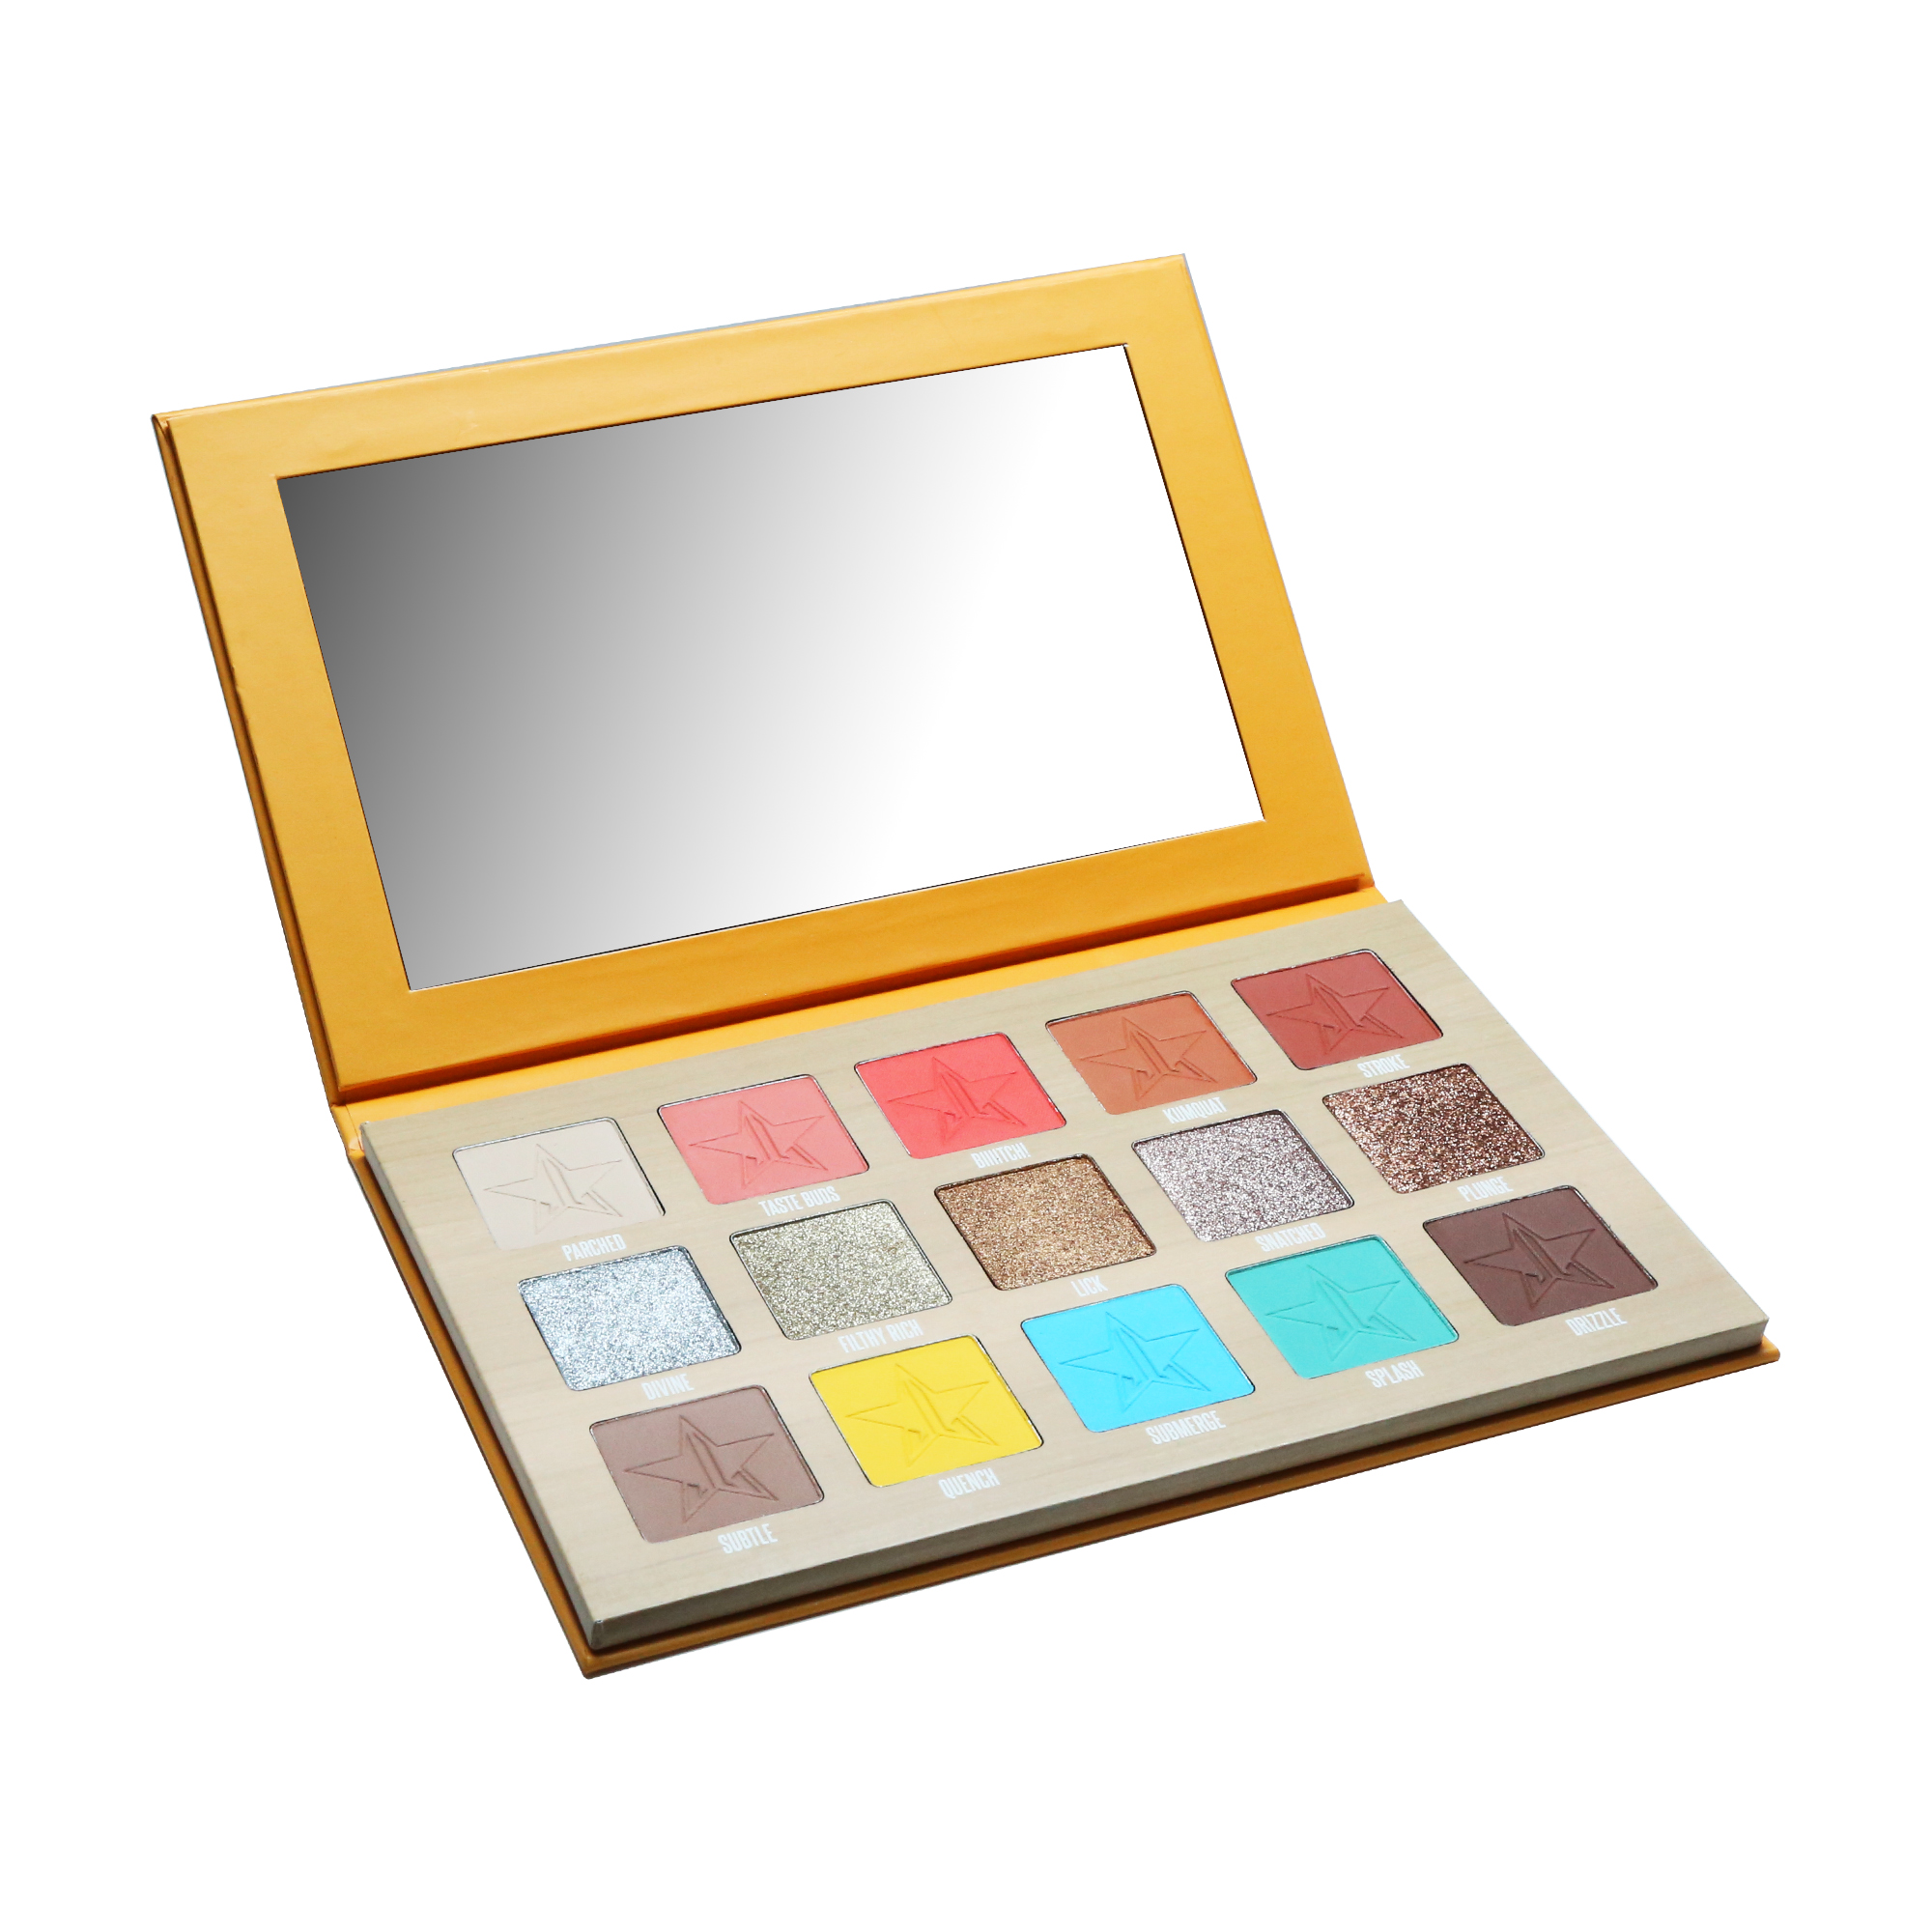 Jeffree Star Cosmetics Thirsty Eyeshadow Palette At Beauty Bay